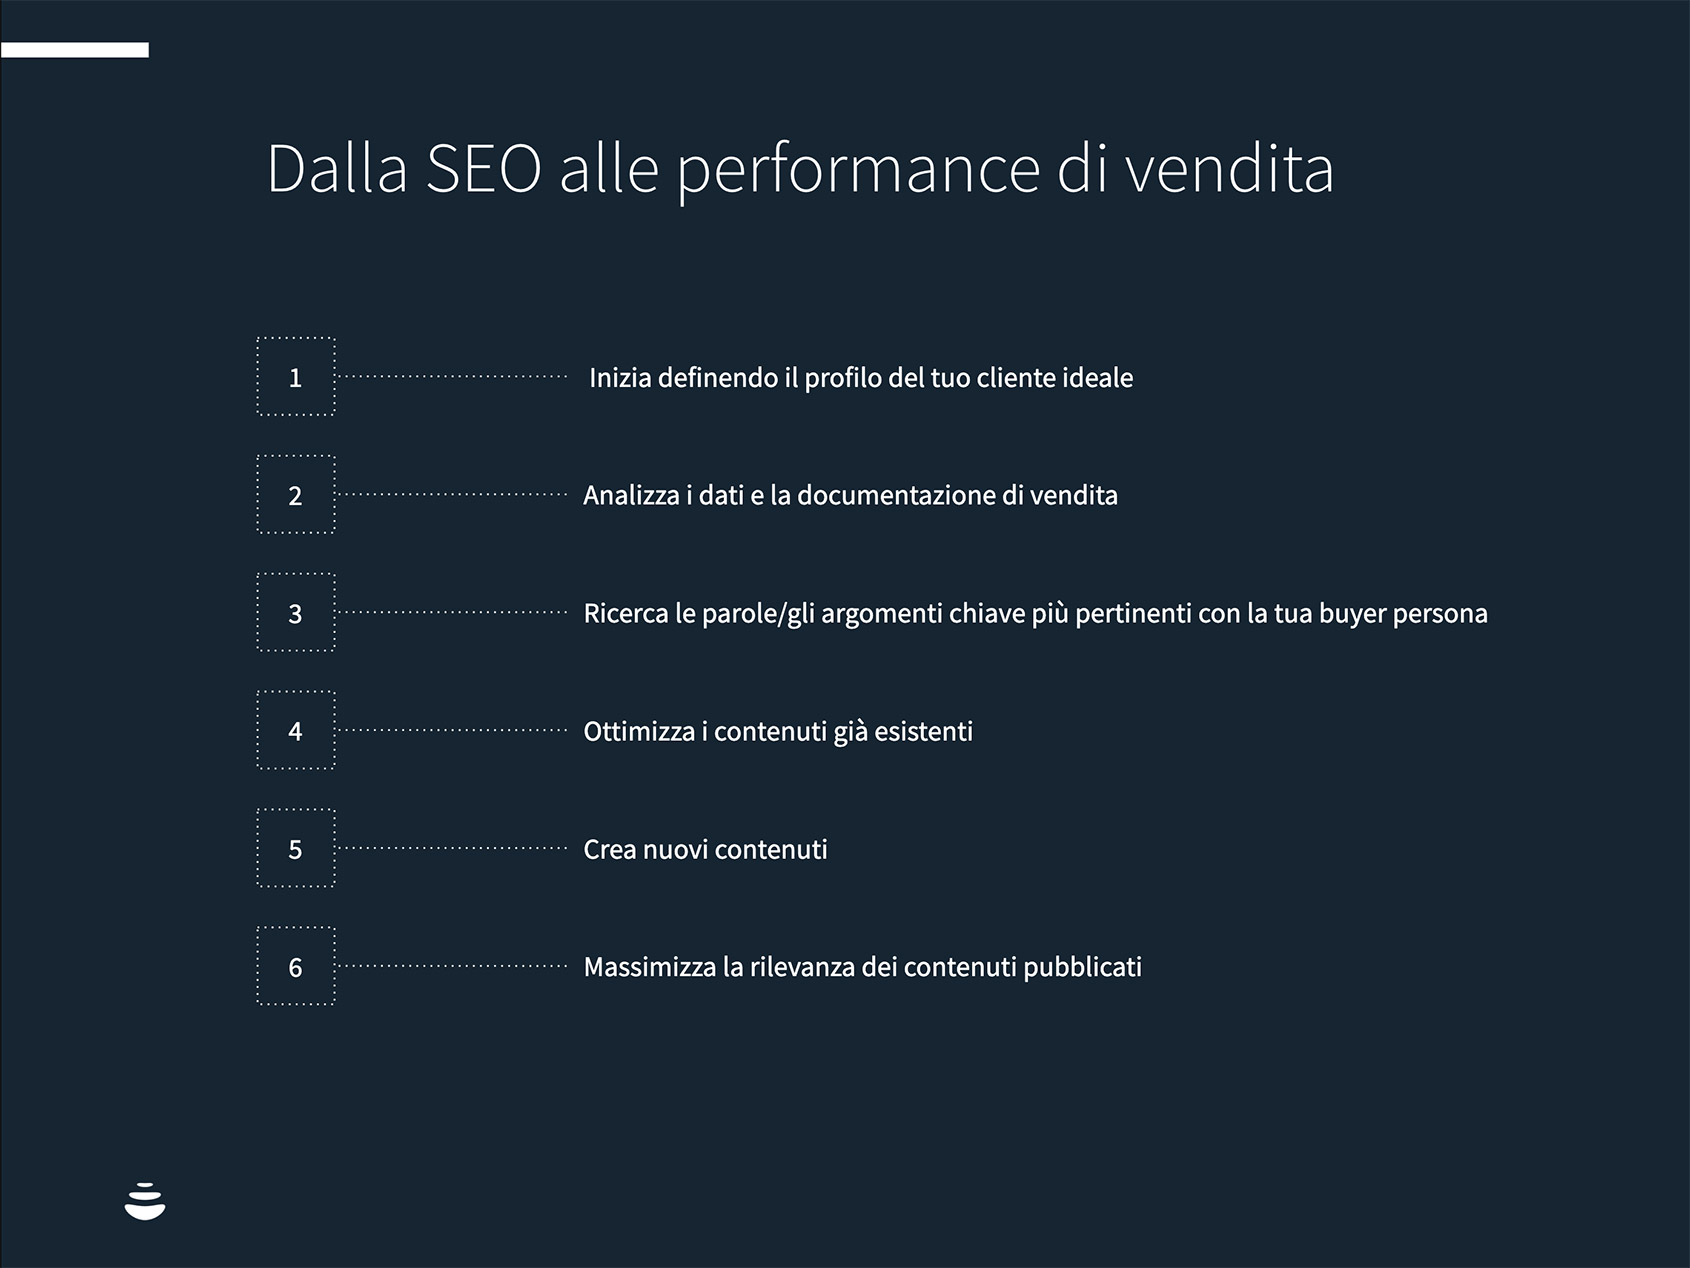 Dalla SEO alle performance di vendita